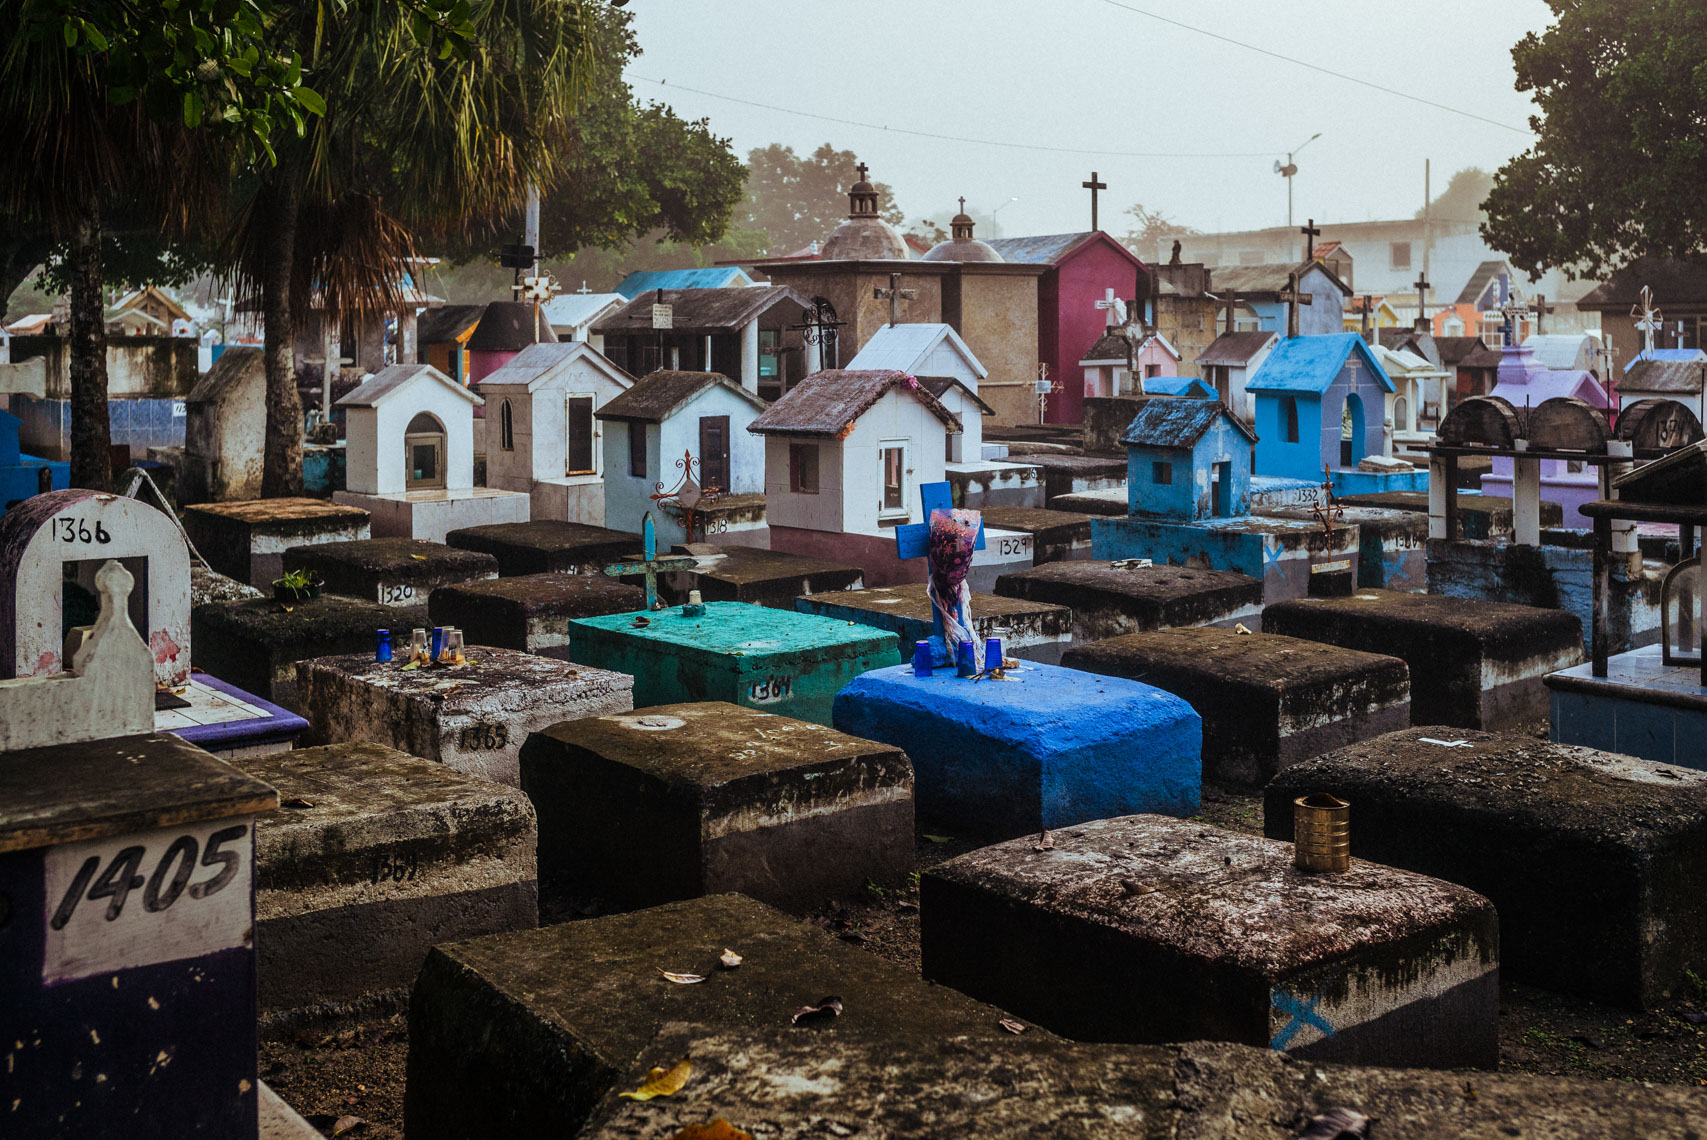 richard-schabetsberger-cemetries-of-mexico-014